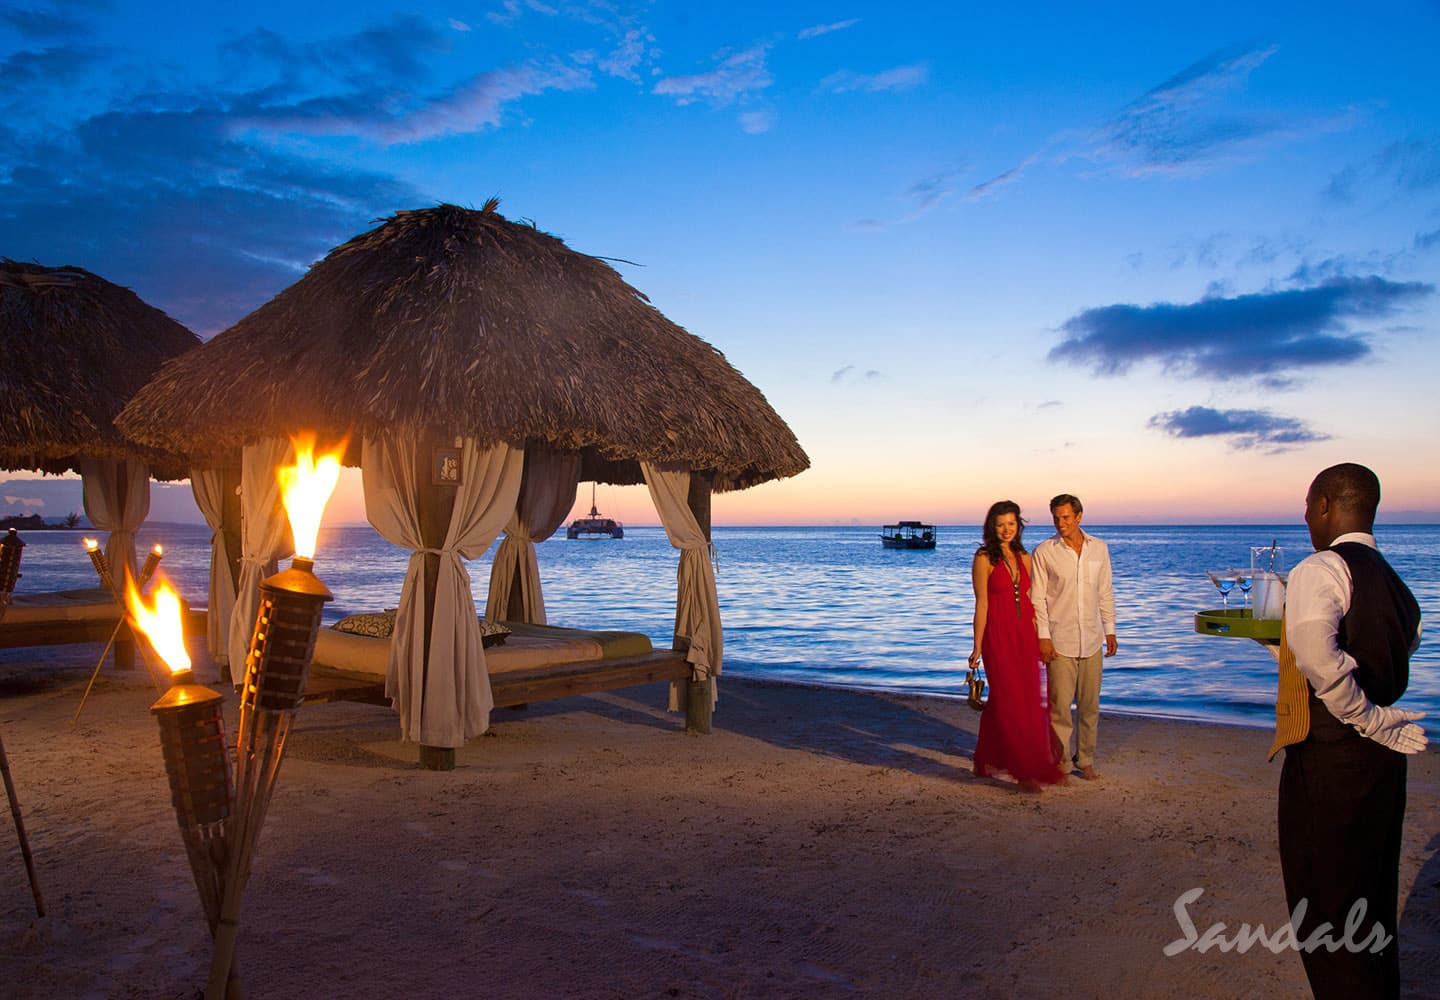 couple on the beach, enjoying a romantic evening with private butler and romantic get-together at the Sandals Montego Bay resort in Jamaica, All Inclusive Adults Only Vacation Packages